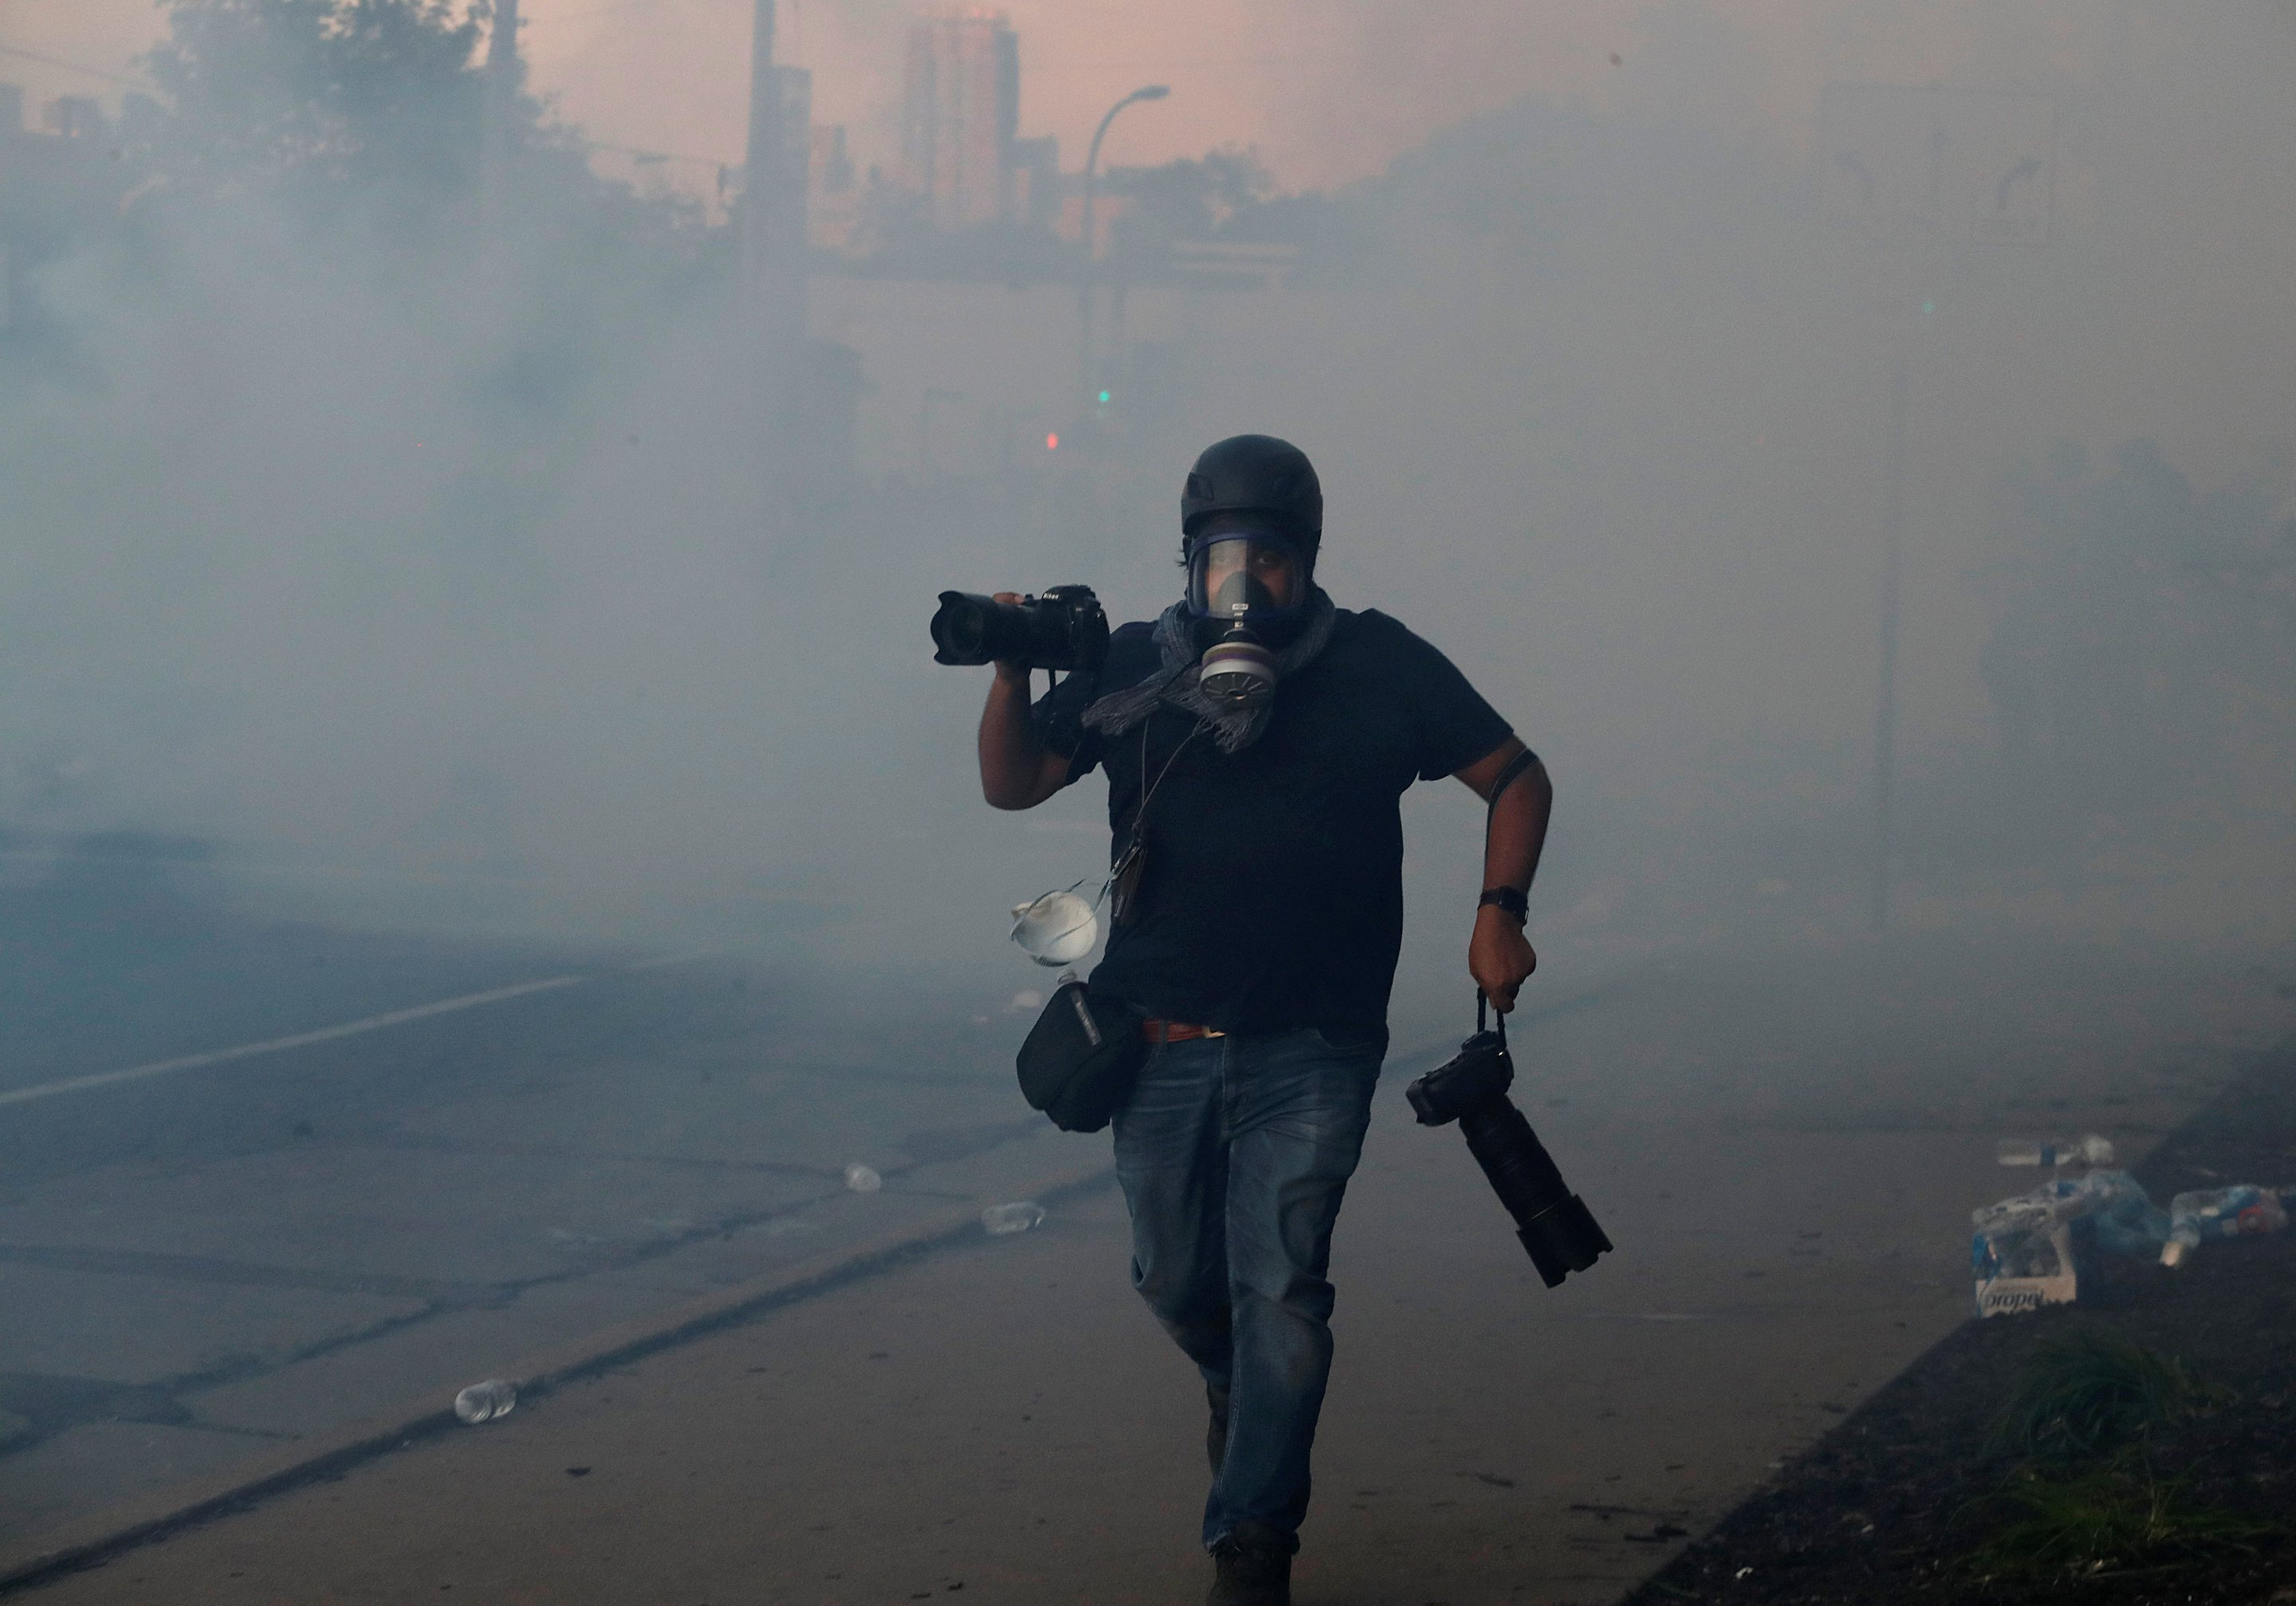 Photo: Reuters/Carlos Barria https://pressfreedomtracker.us/physical-attack/